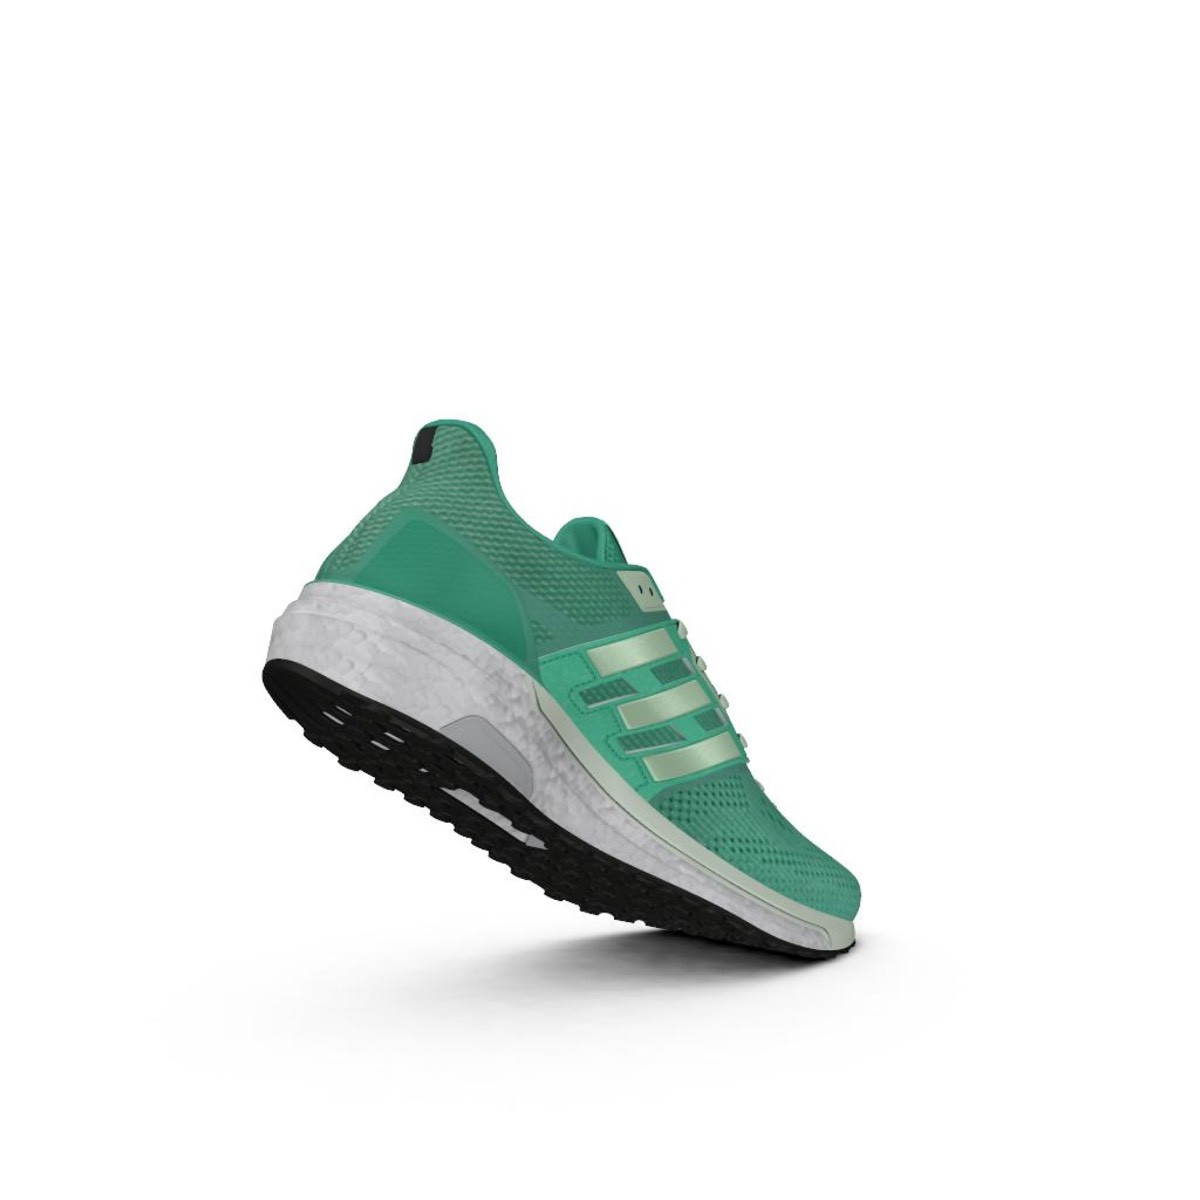 best service e7a6f 2f40b ... Adidas Supernova Womens Hi-Res Green S18Aero Green S18Grey Three F17  ...